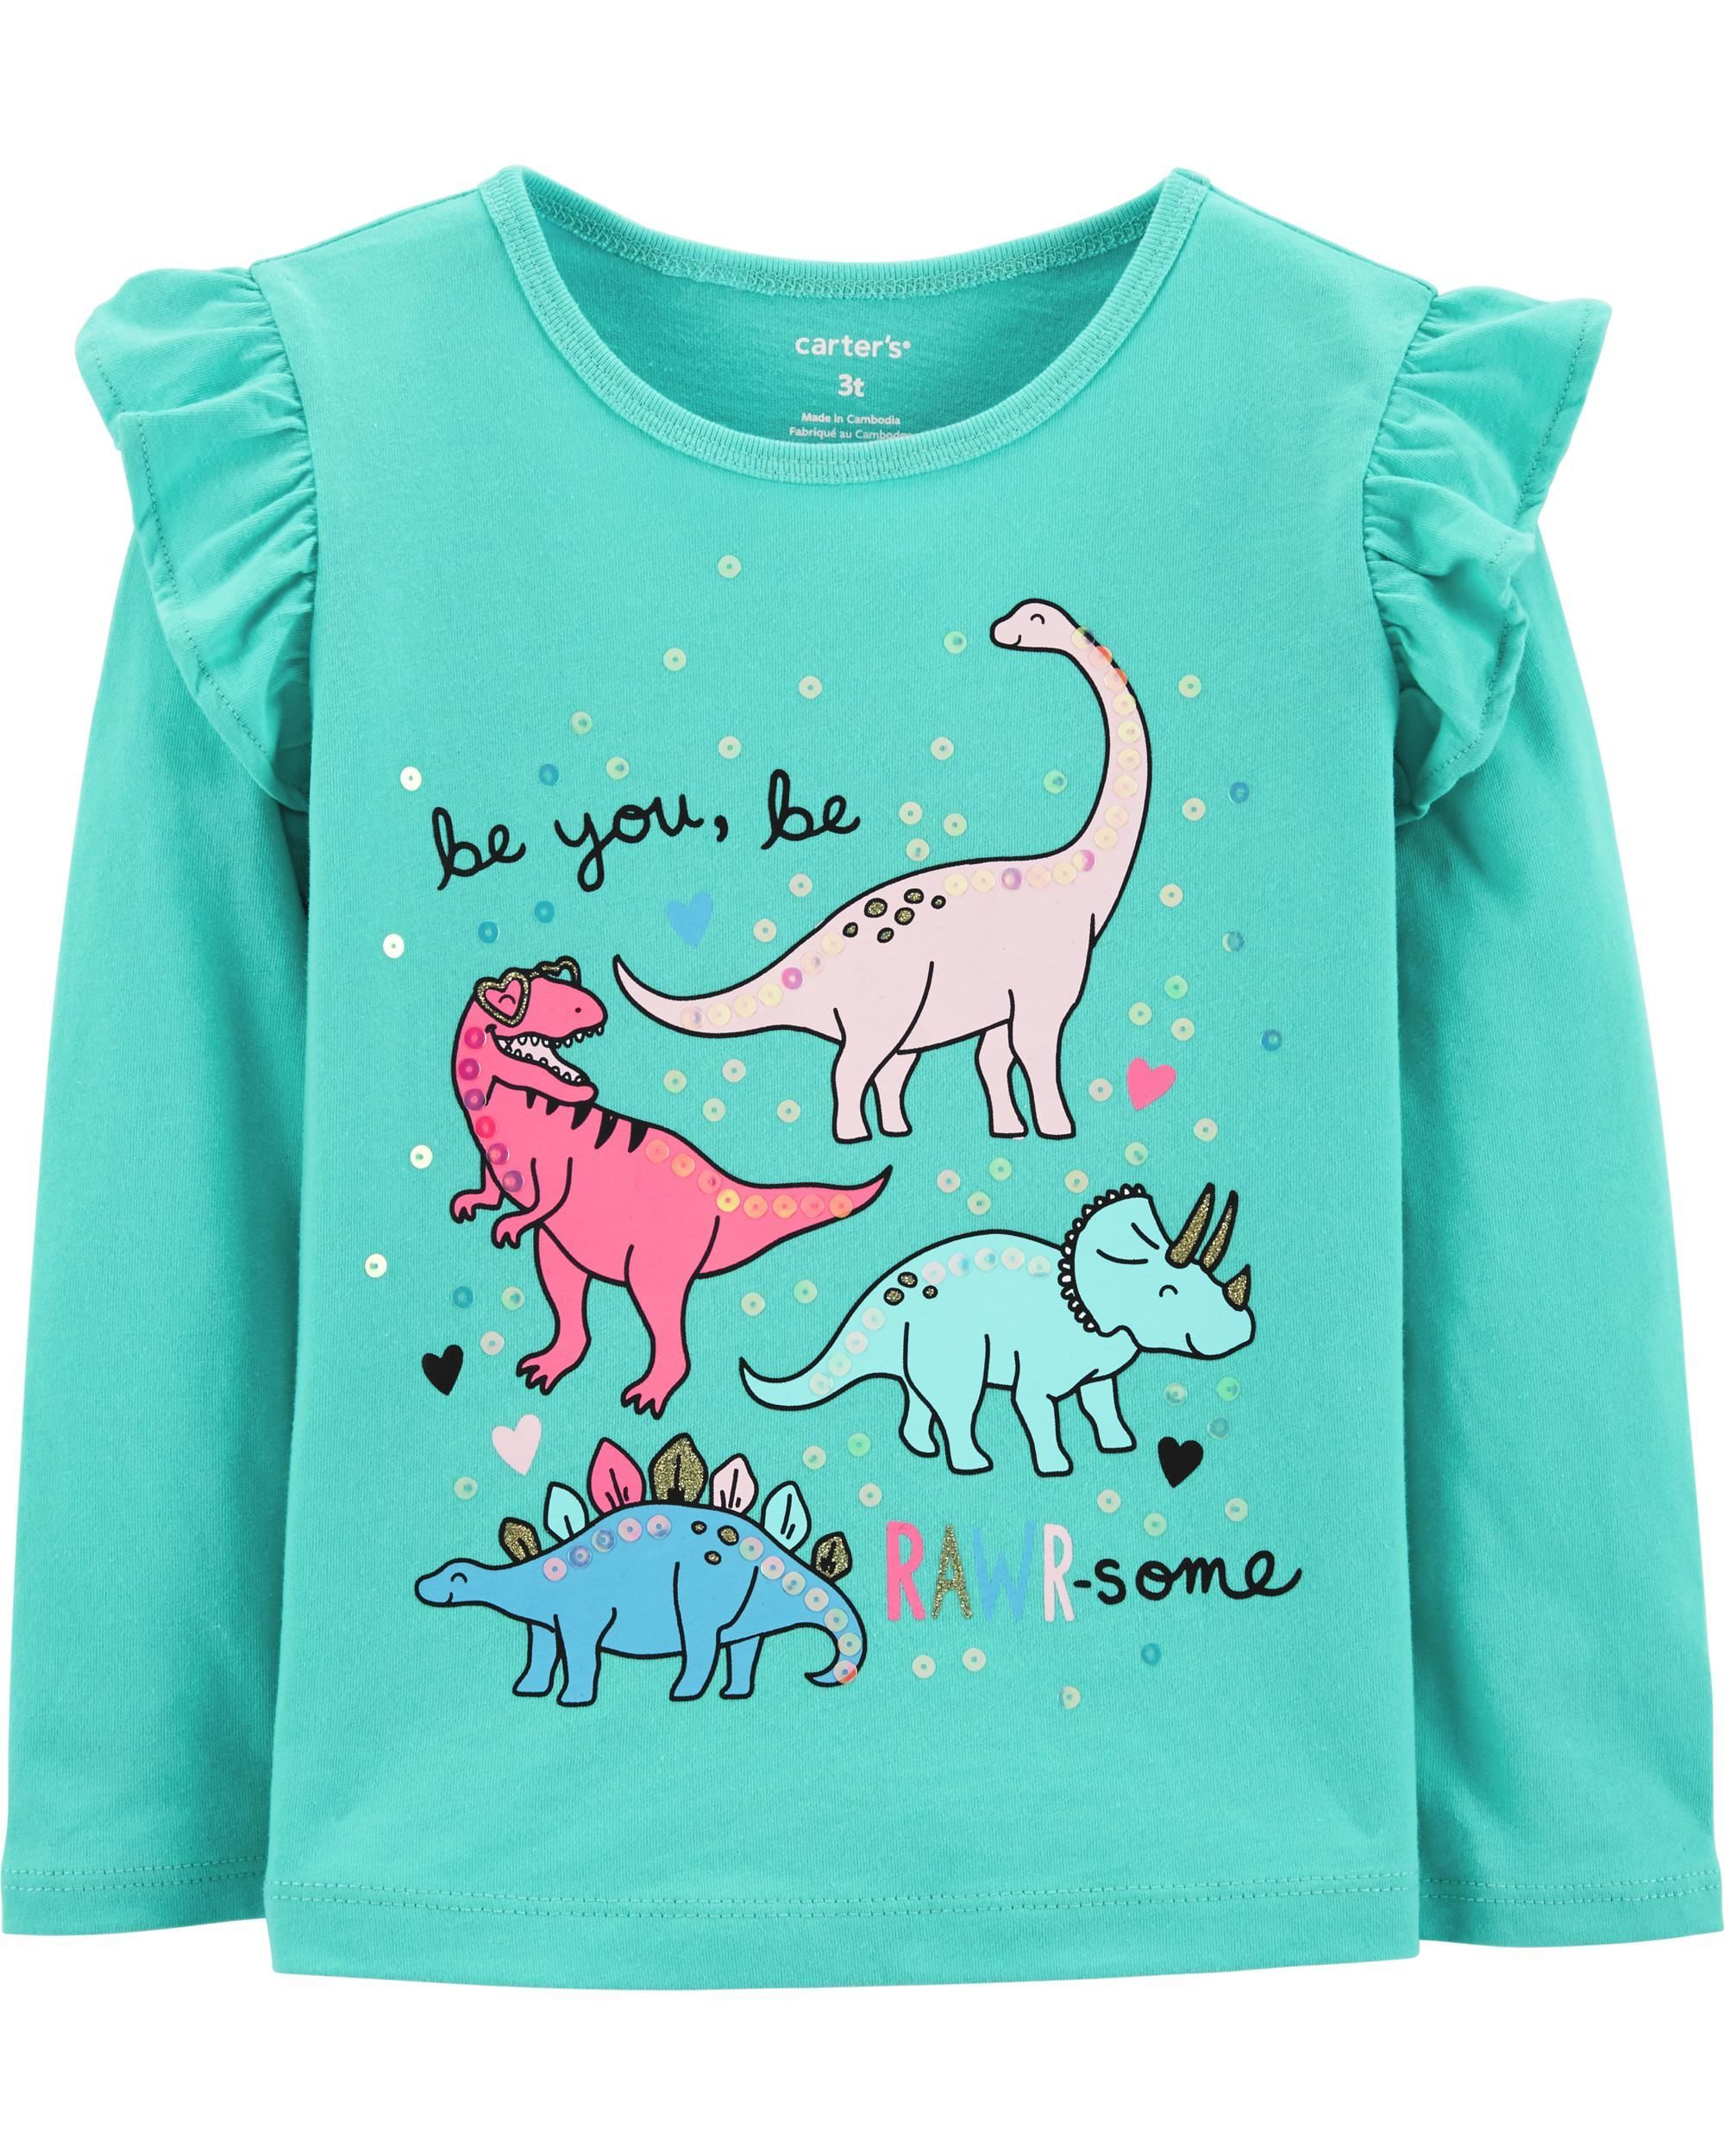 d87419d5eec5 Dinosaur Flutter Tee | Baby Girl | Clothes, Stylish baby clothes ...